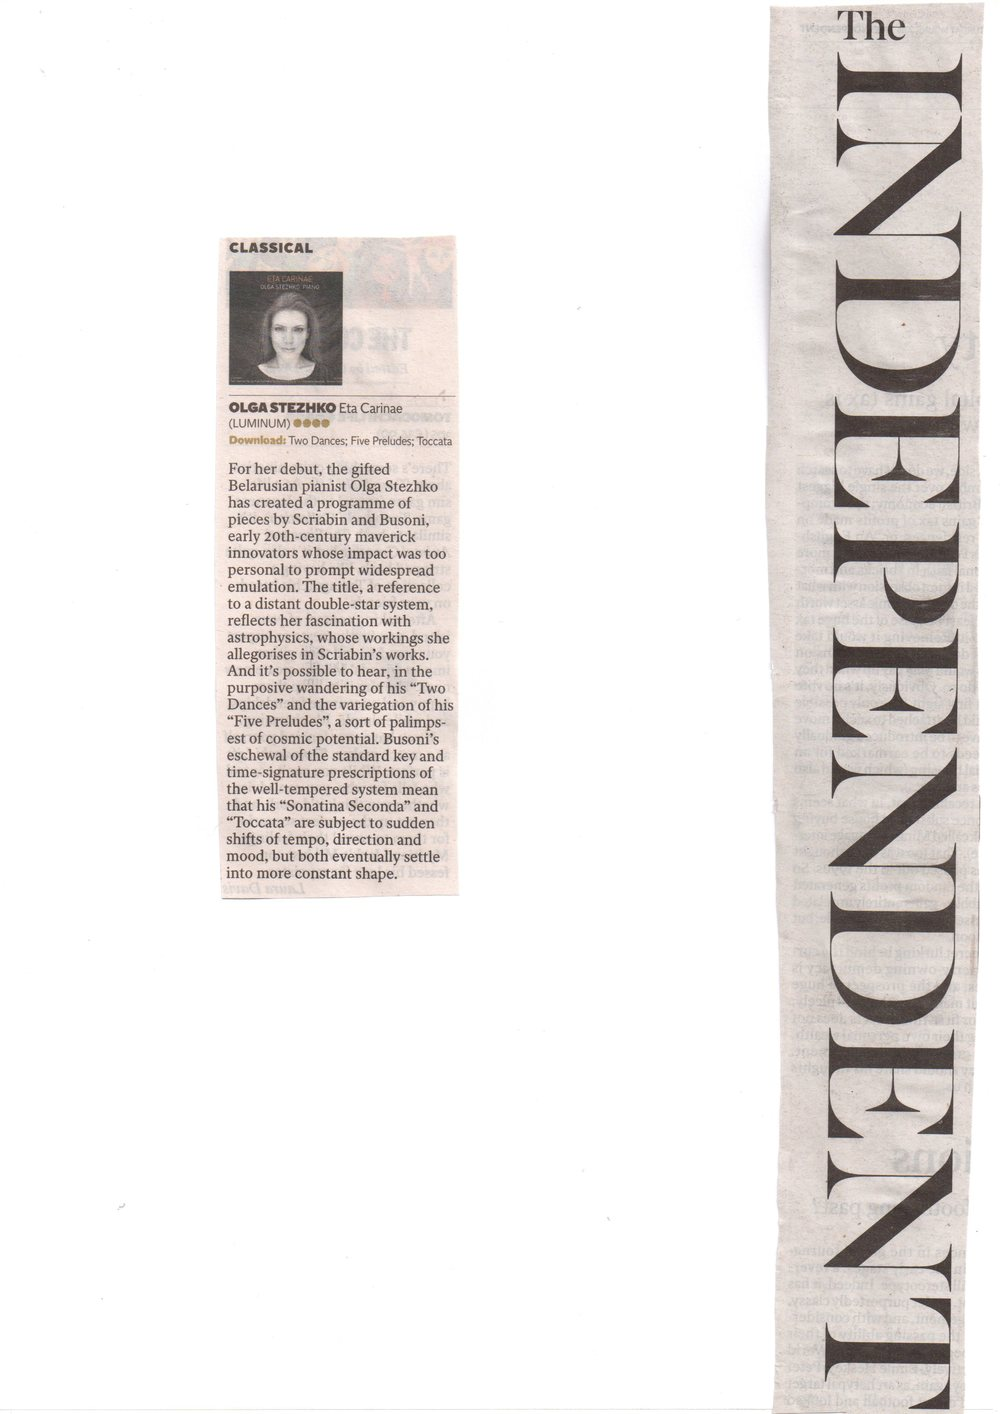 The Independent 4 star review for Olga Stezhko's album Eta Carinae